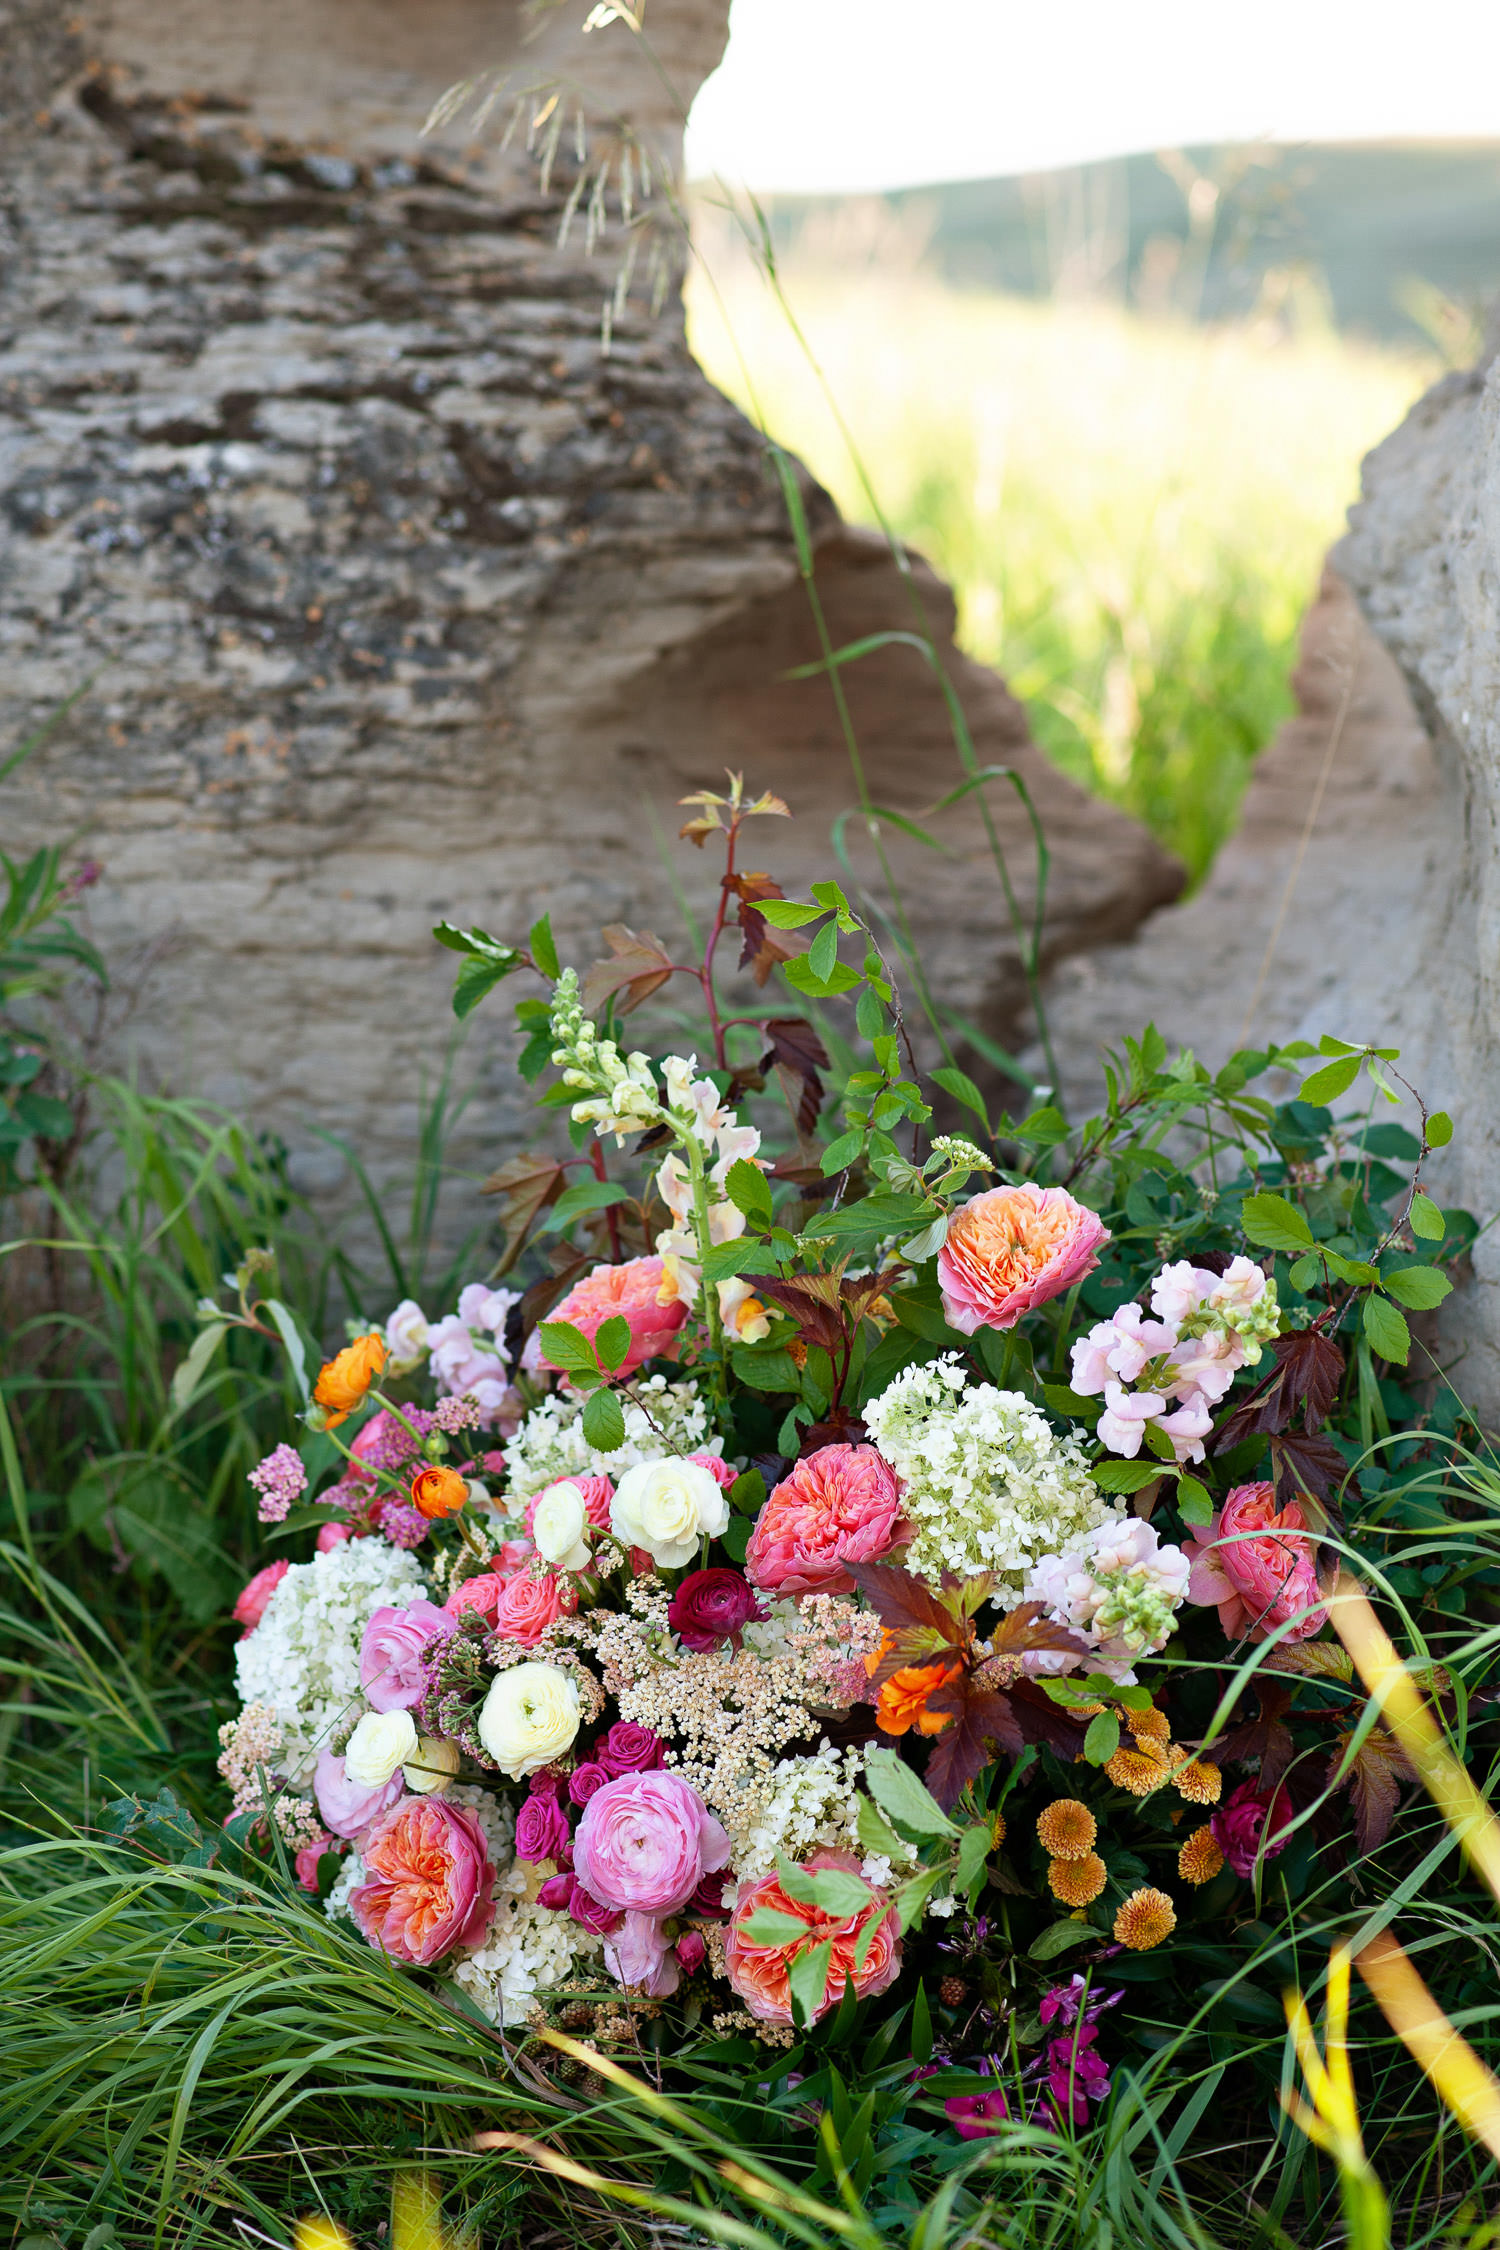 large floral arrangement from Flowers by Janie captured by Tara Whittaker Photography